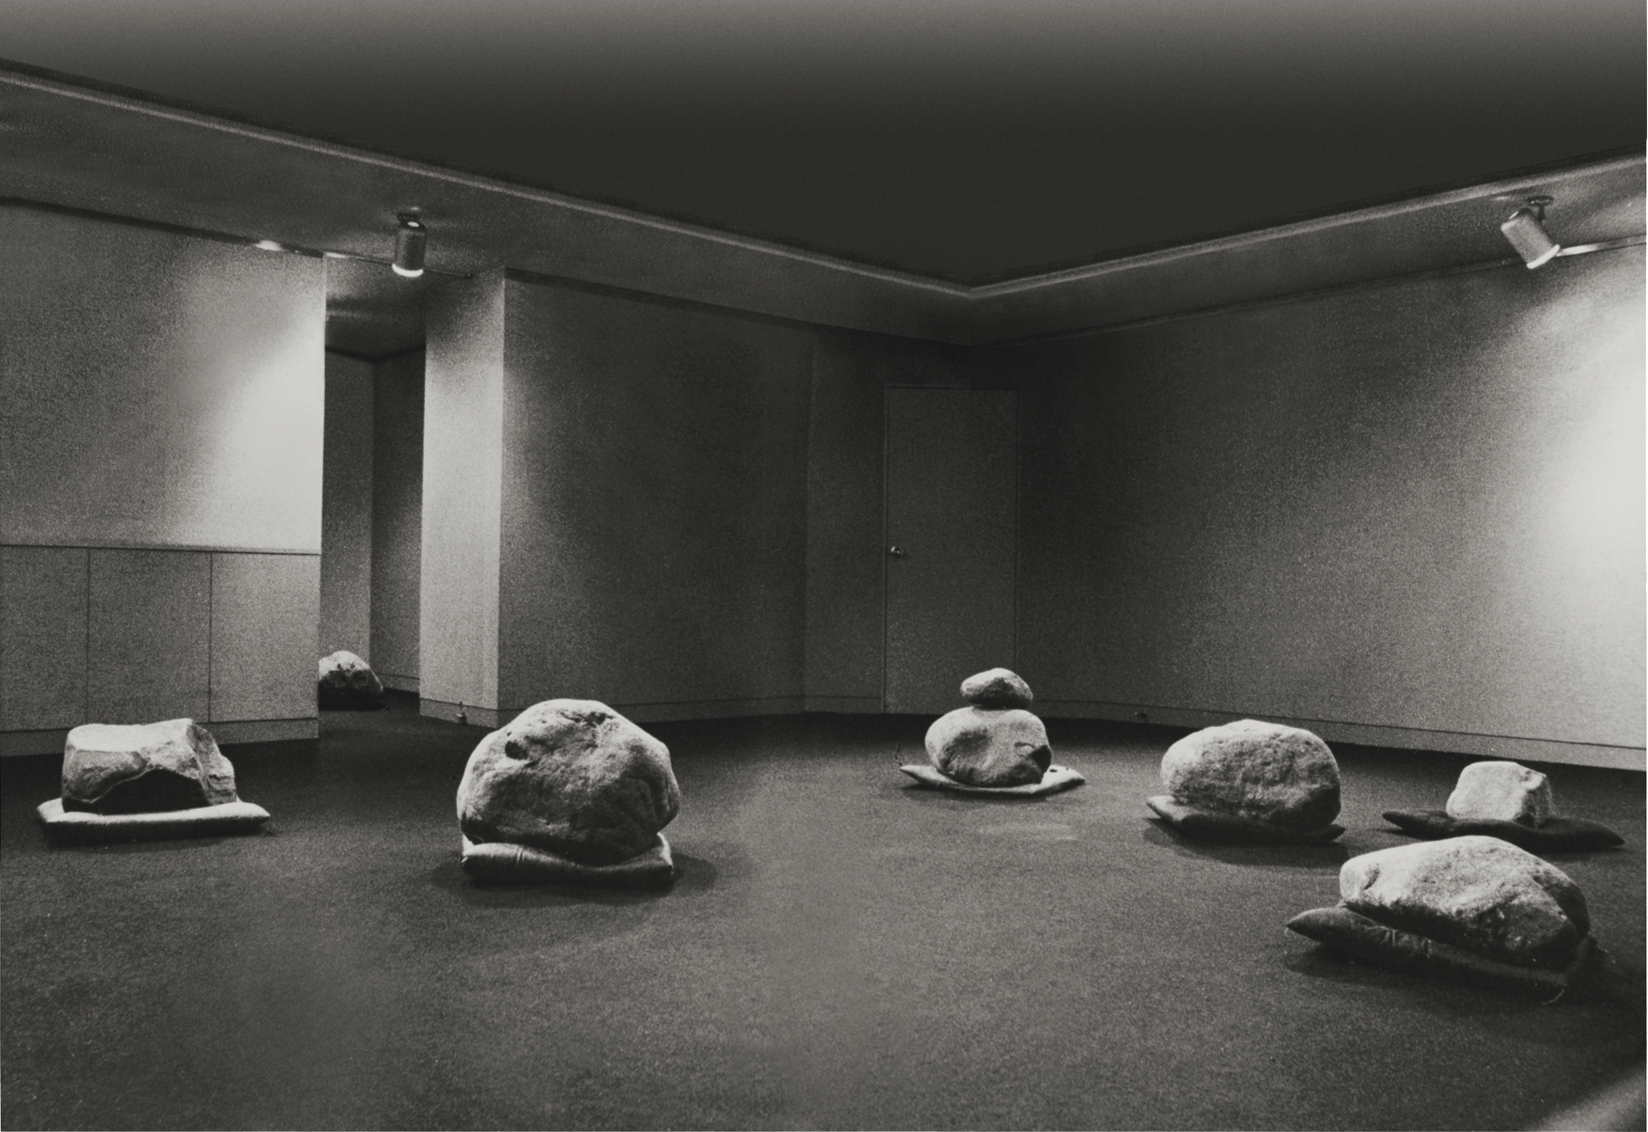 Lee Ufan, Relatum (formerly Language ),1971, installation view: Pinar Gallery, Tokyo, 1971.© Artists Rights Society (ARS), New York / ADAGP, Paris.Courtesy the artist